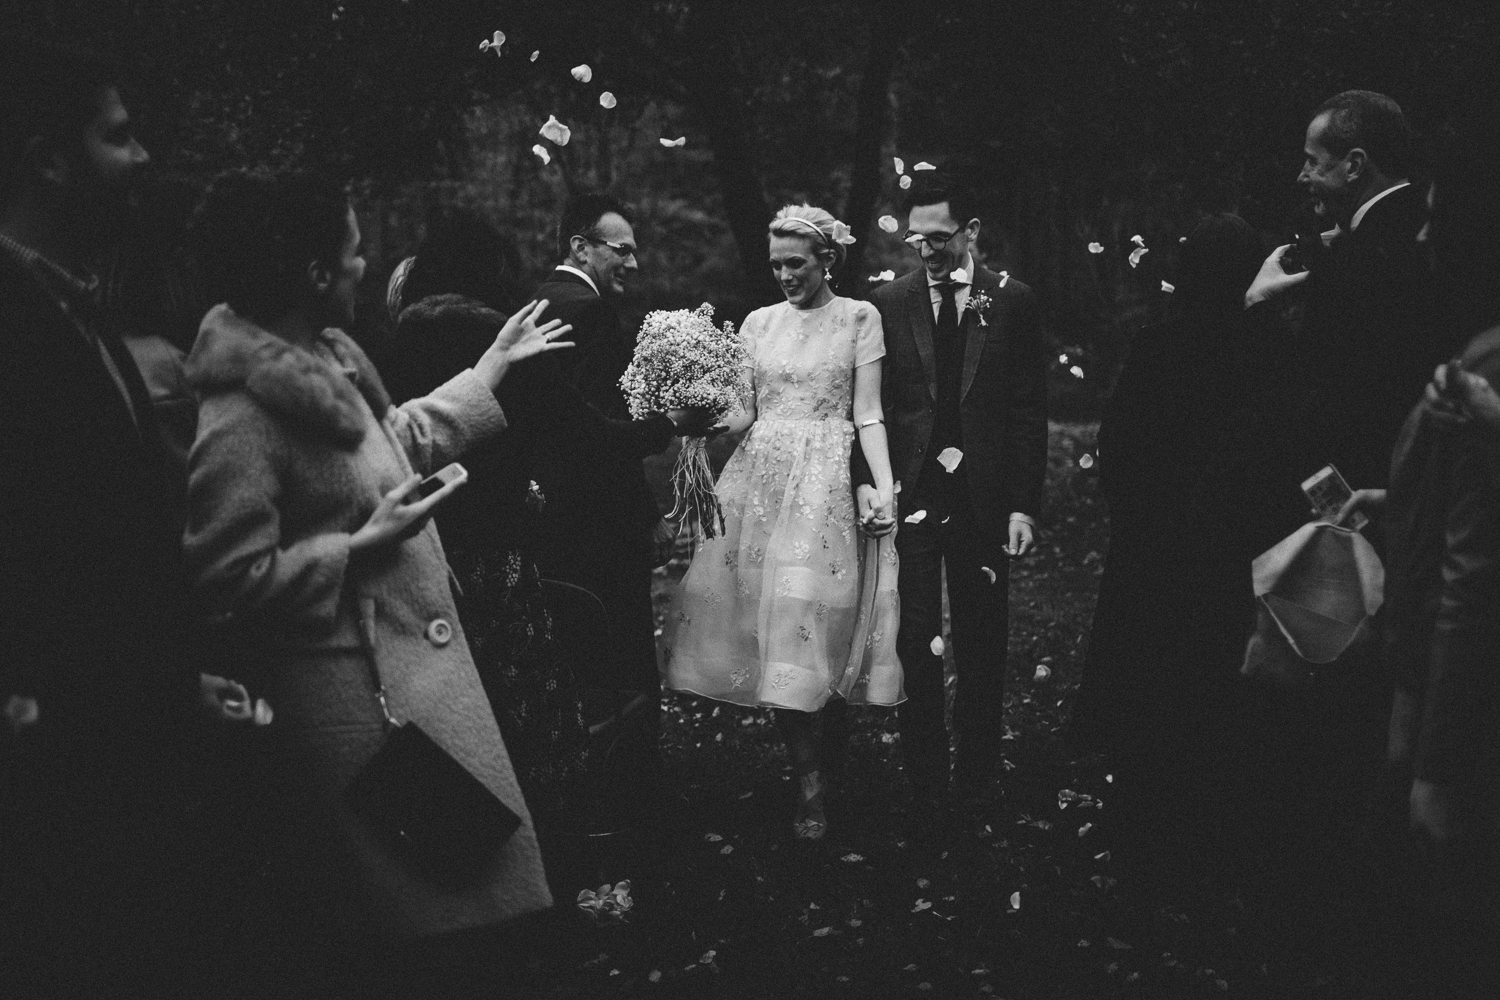 rose petals thrown after ceremony